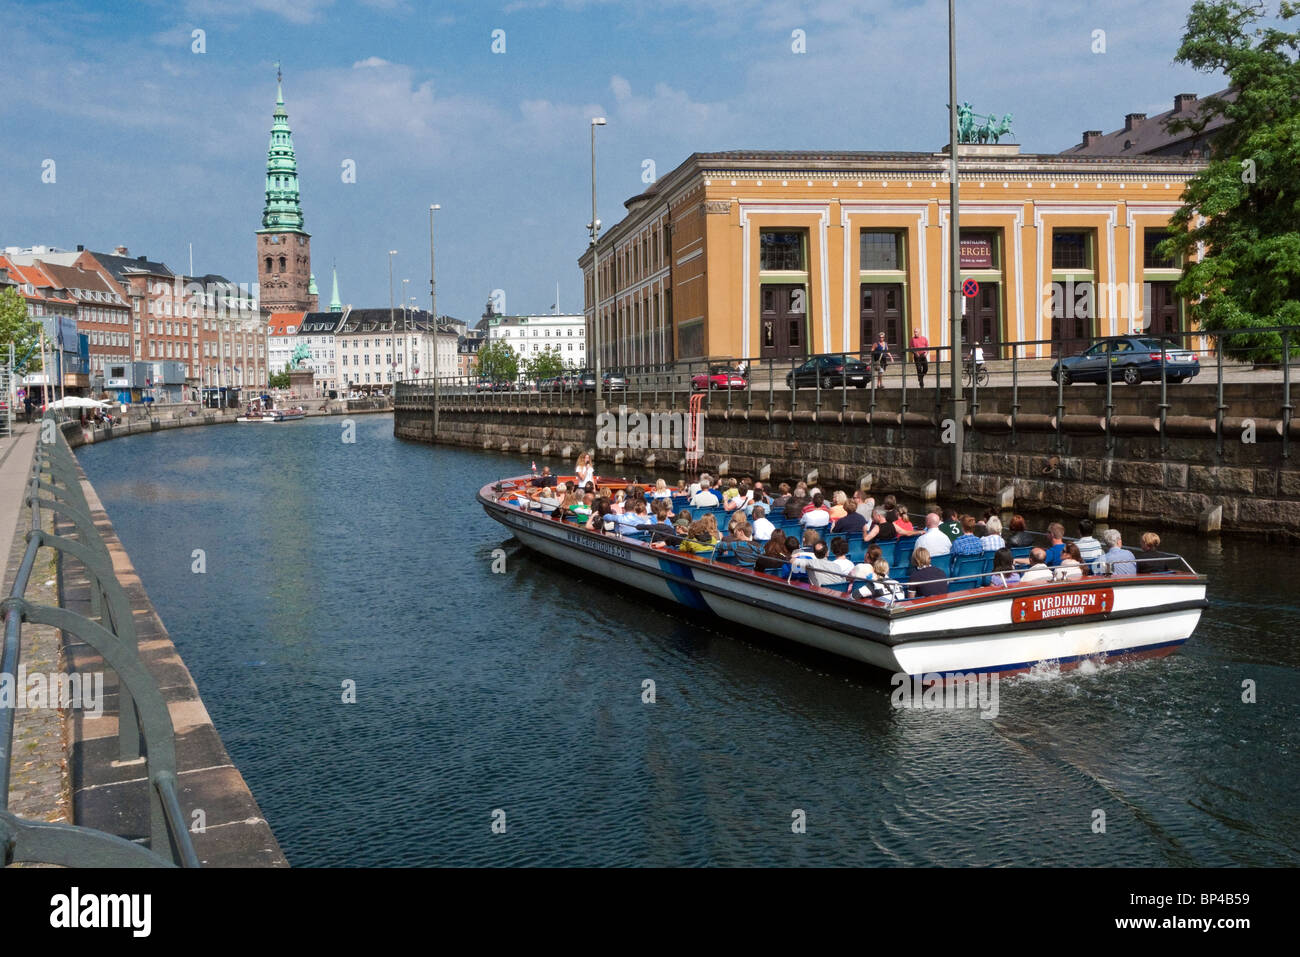 Harbour cruise vessel passes through Frederiksholm Kanal in Copenhagen with Thorvaldsens Museum to the right. - Stock Image